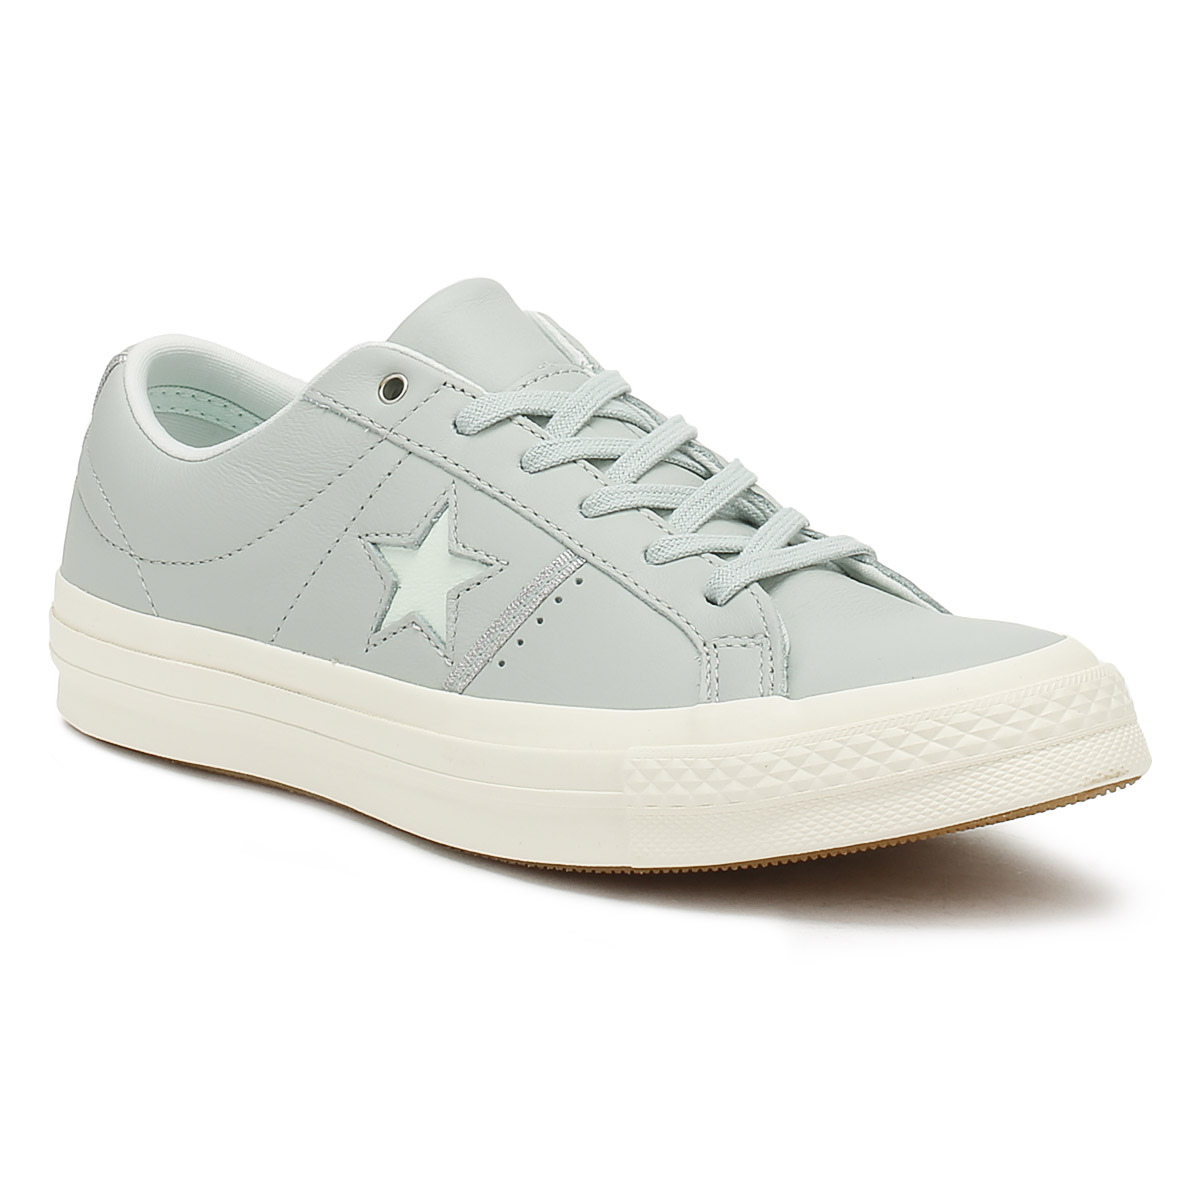 Converse One Star Damenschuhe Dried Bamboo Blau Up Ox Trainers Leder Lace Up Blau Schuhes a31933